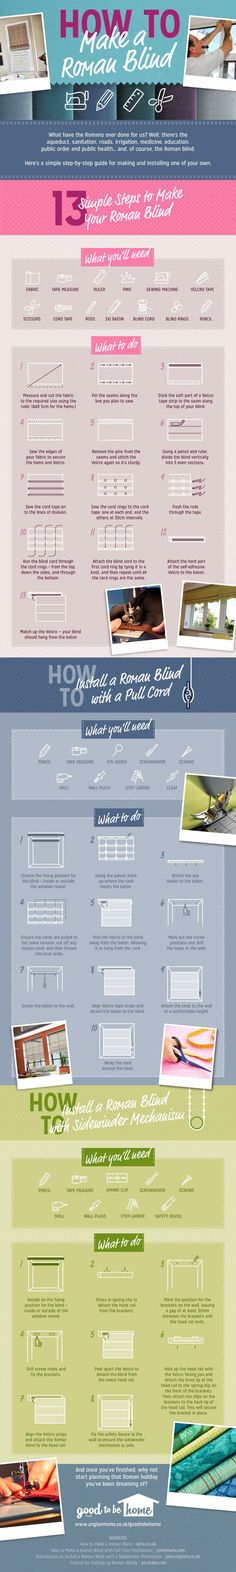 Guide on how to make a roman blind